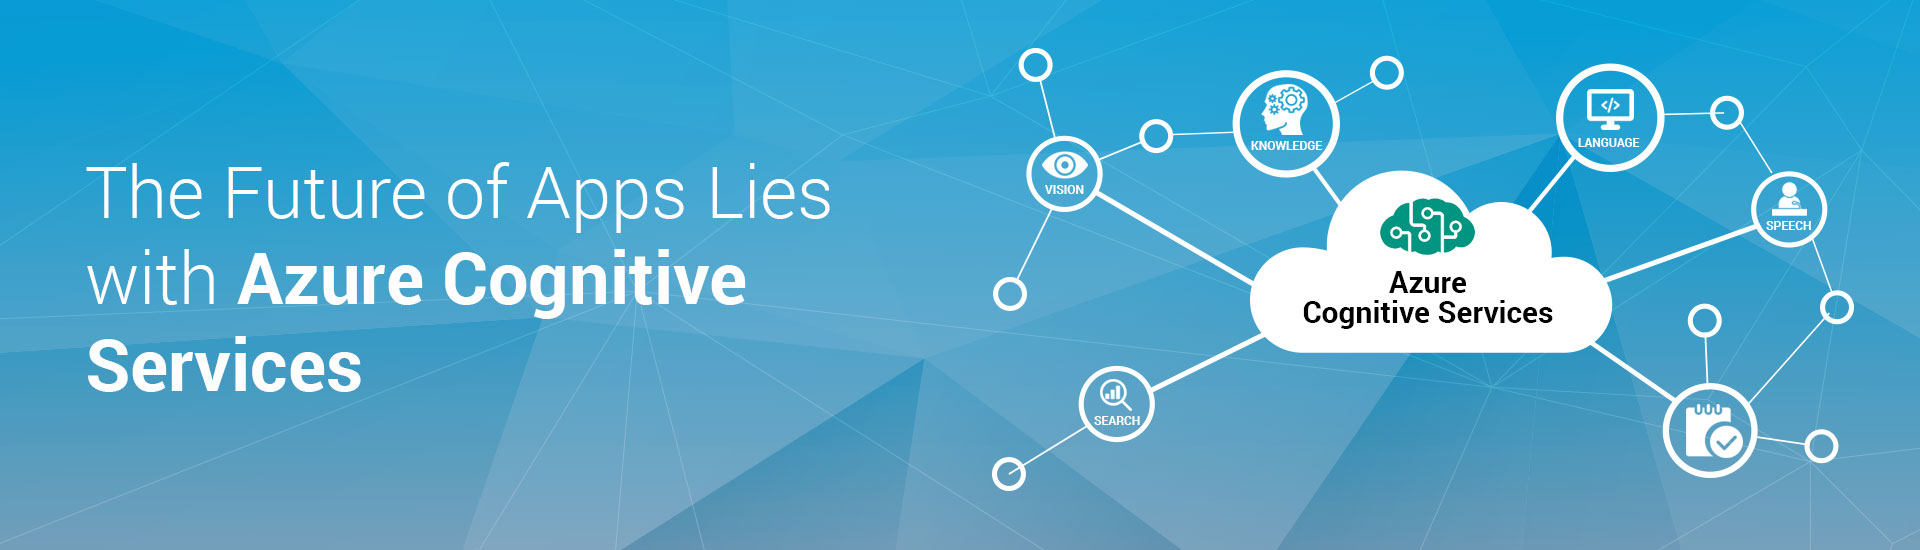 See how Azure Cognitive Services can enhance your applications through Artificial Intelligence and Machine Learning!